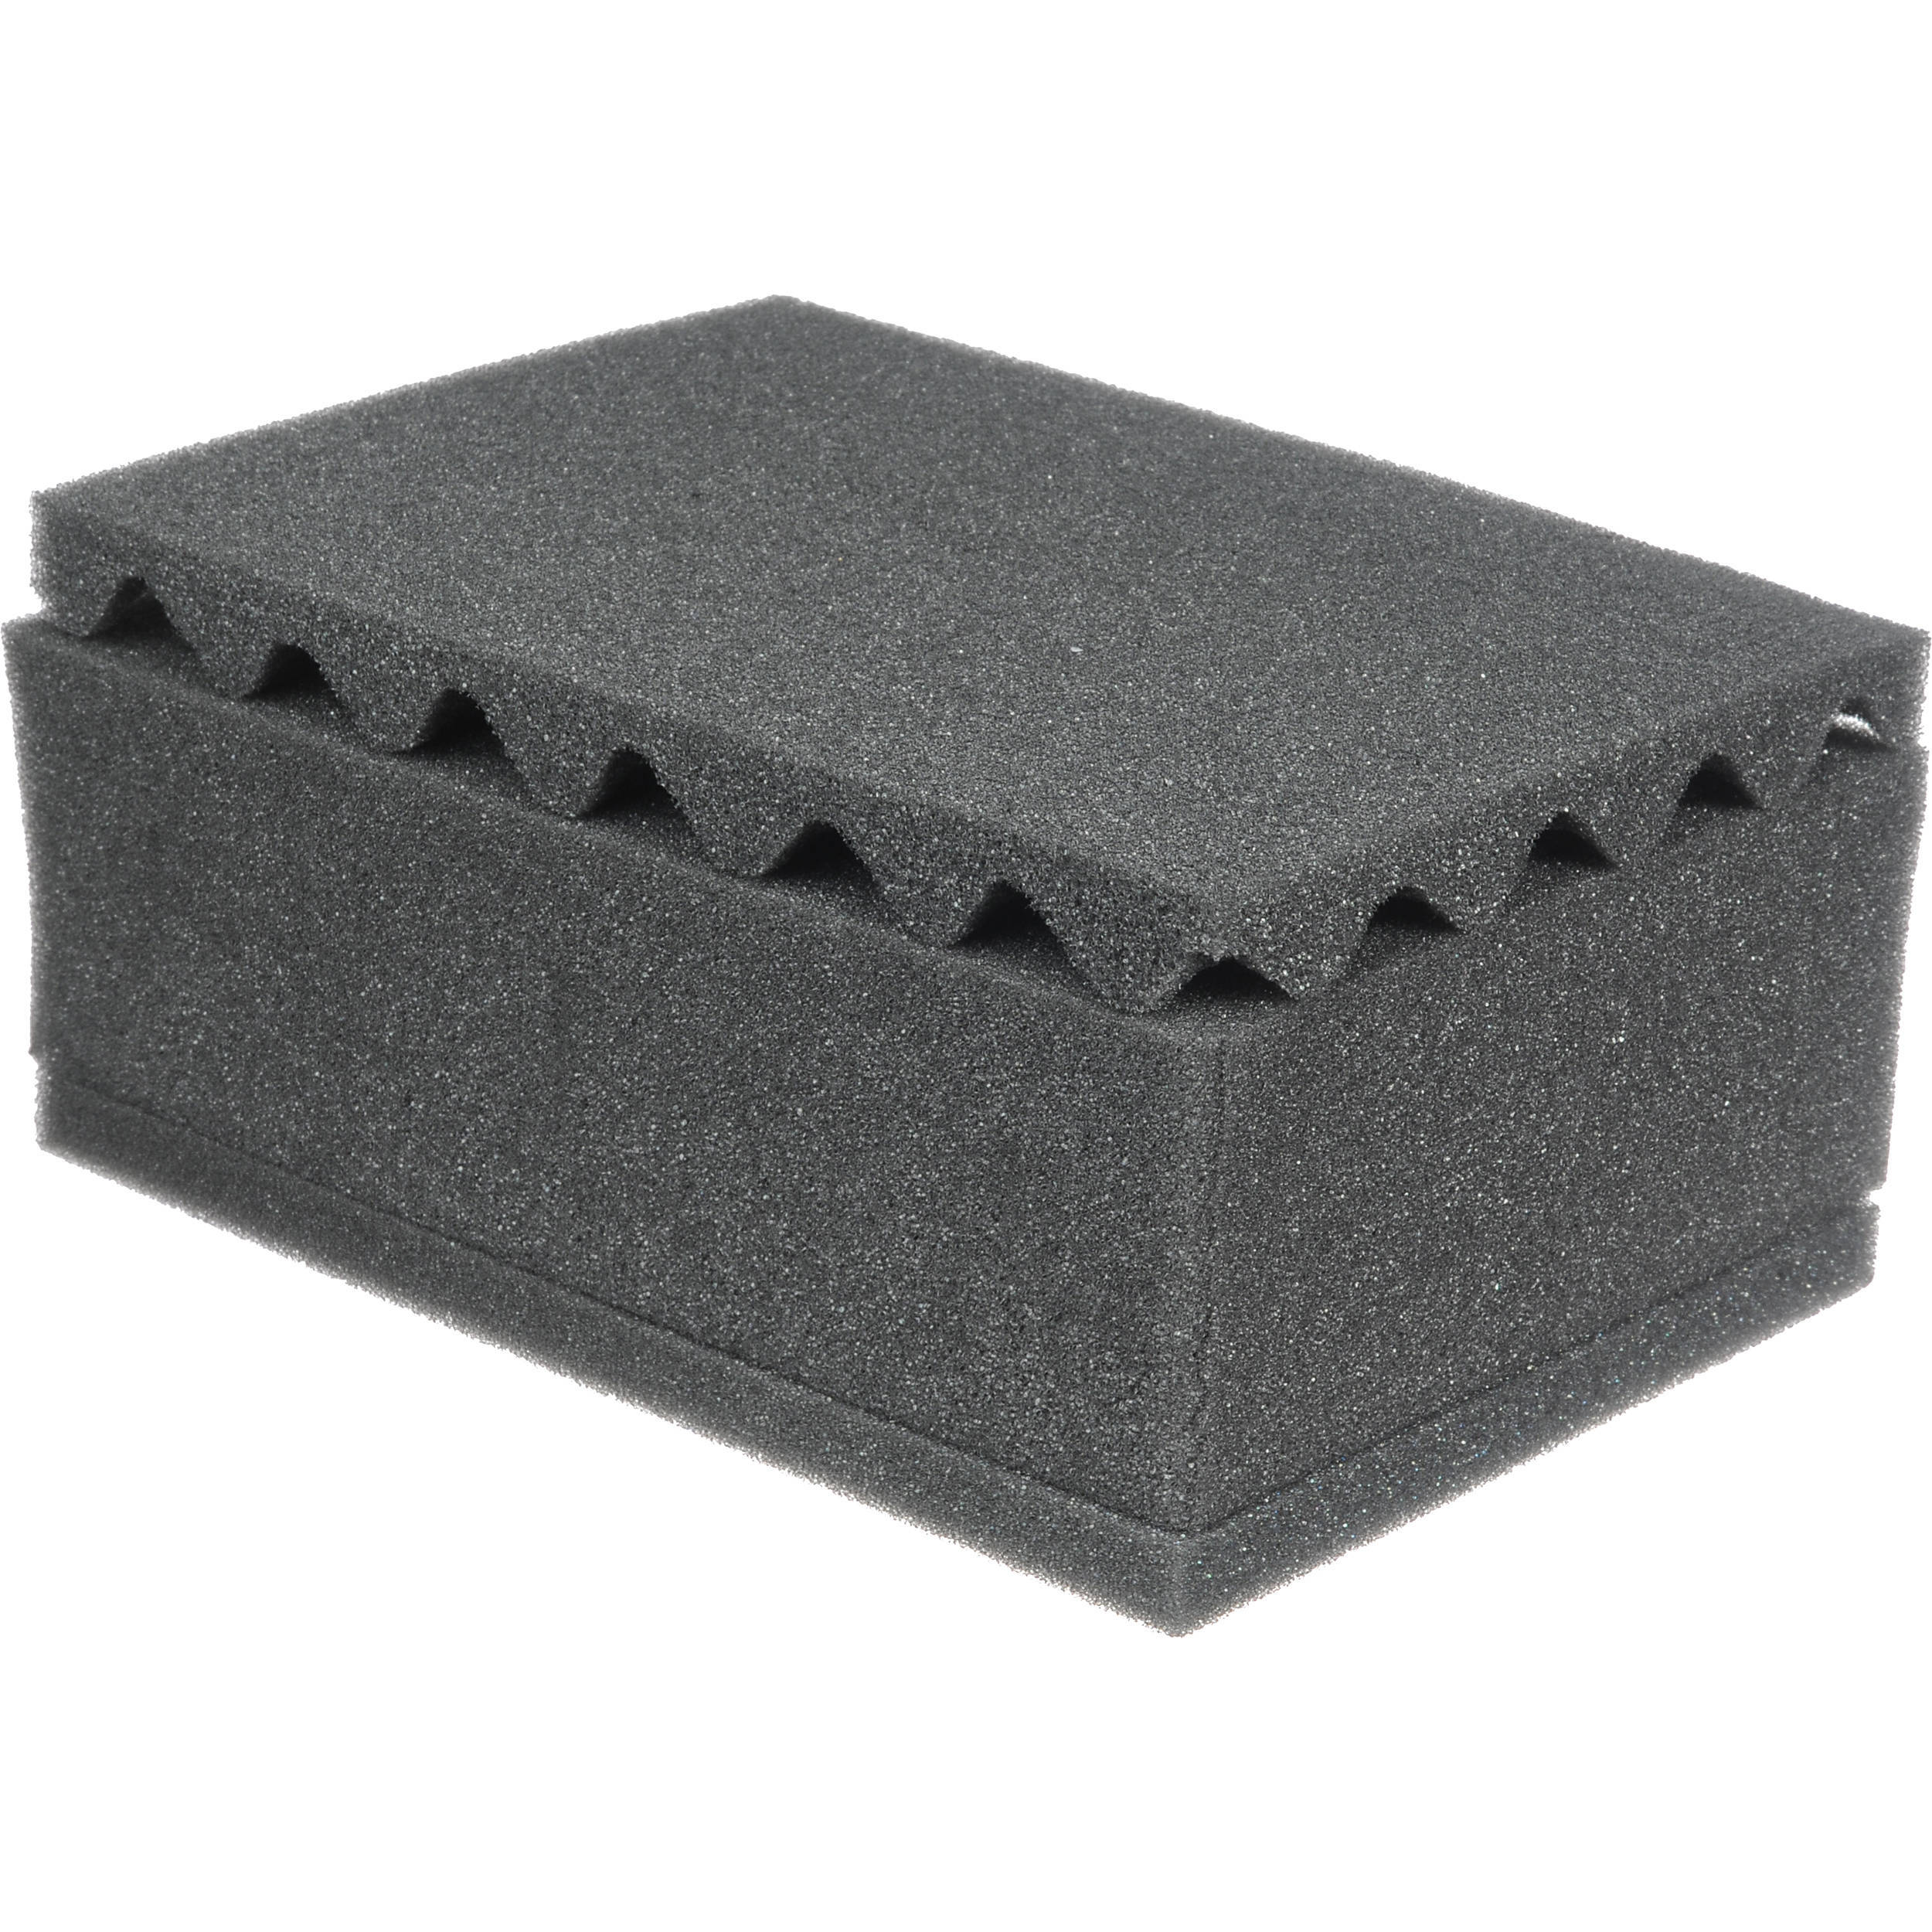 Polyurethane Foam Containers : Converter magazine the protective packaging solution